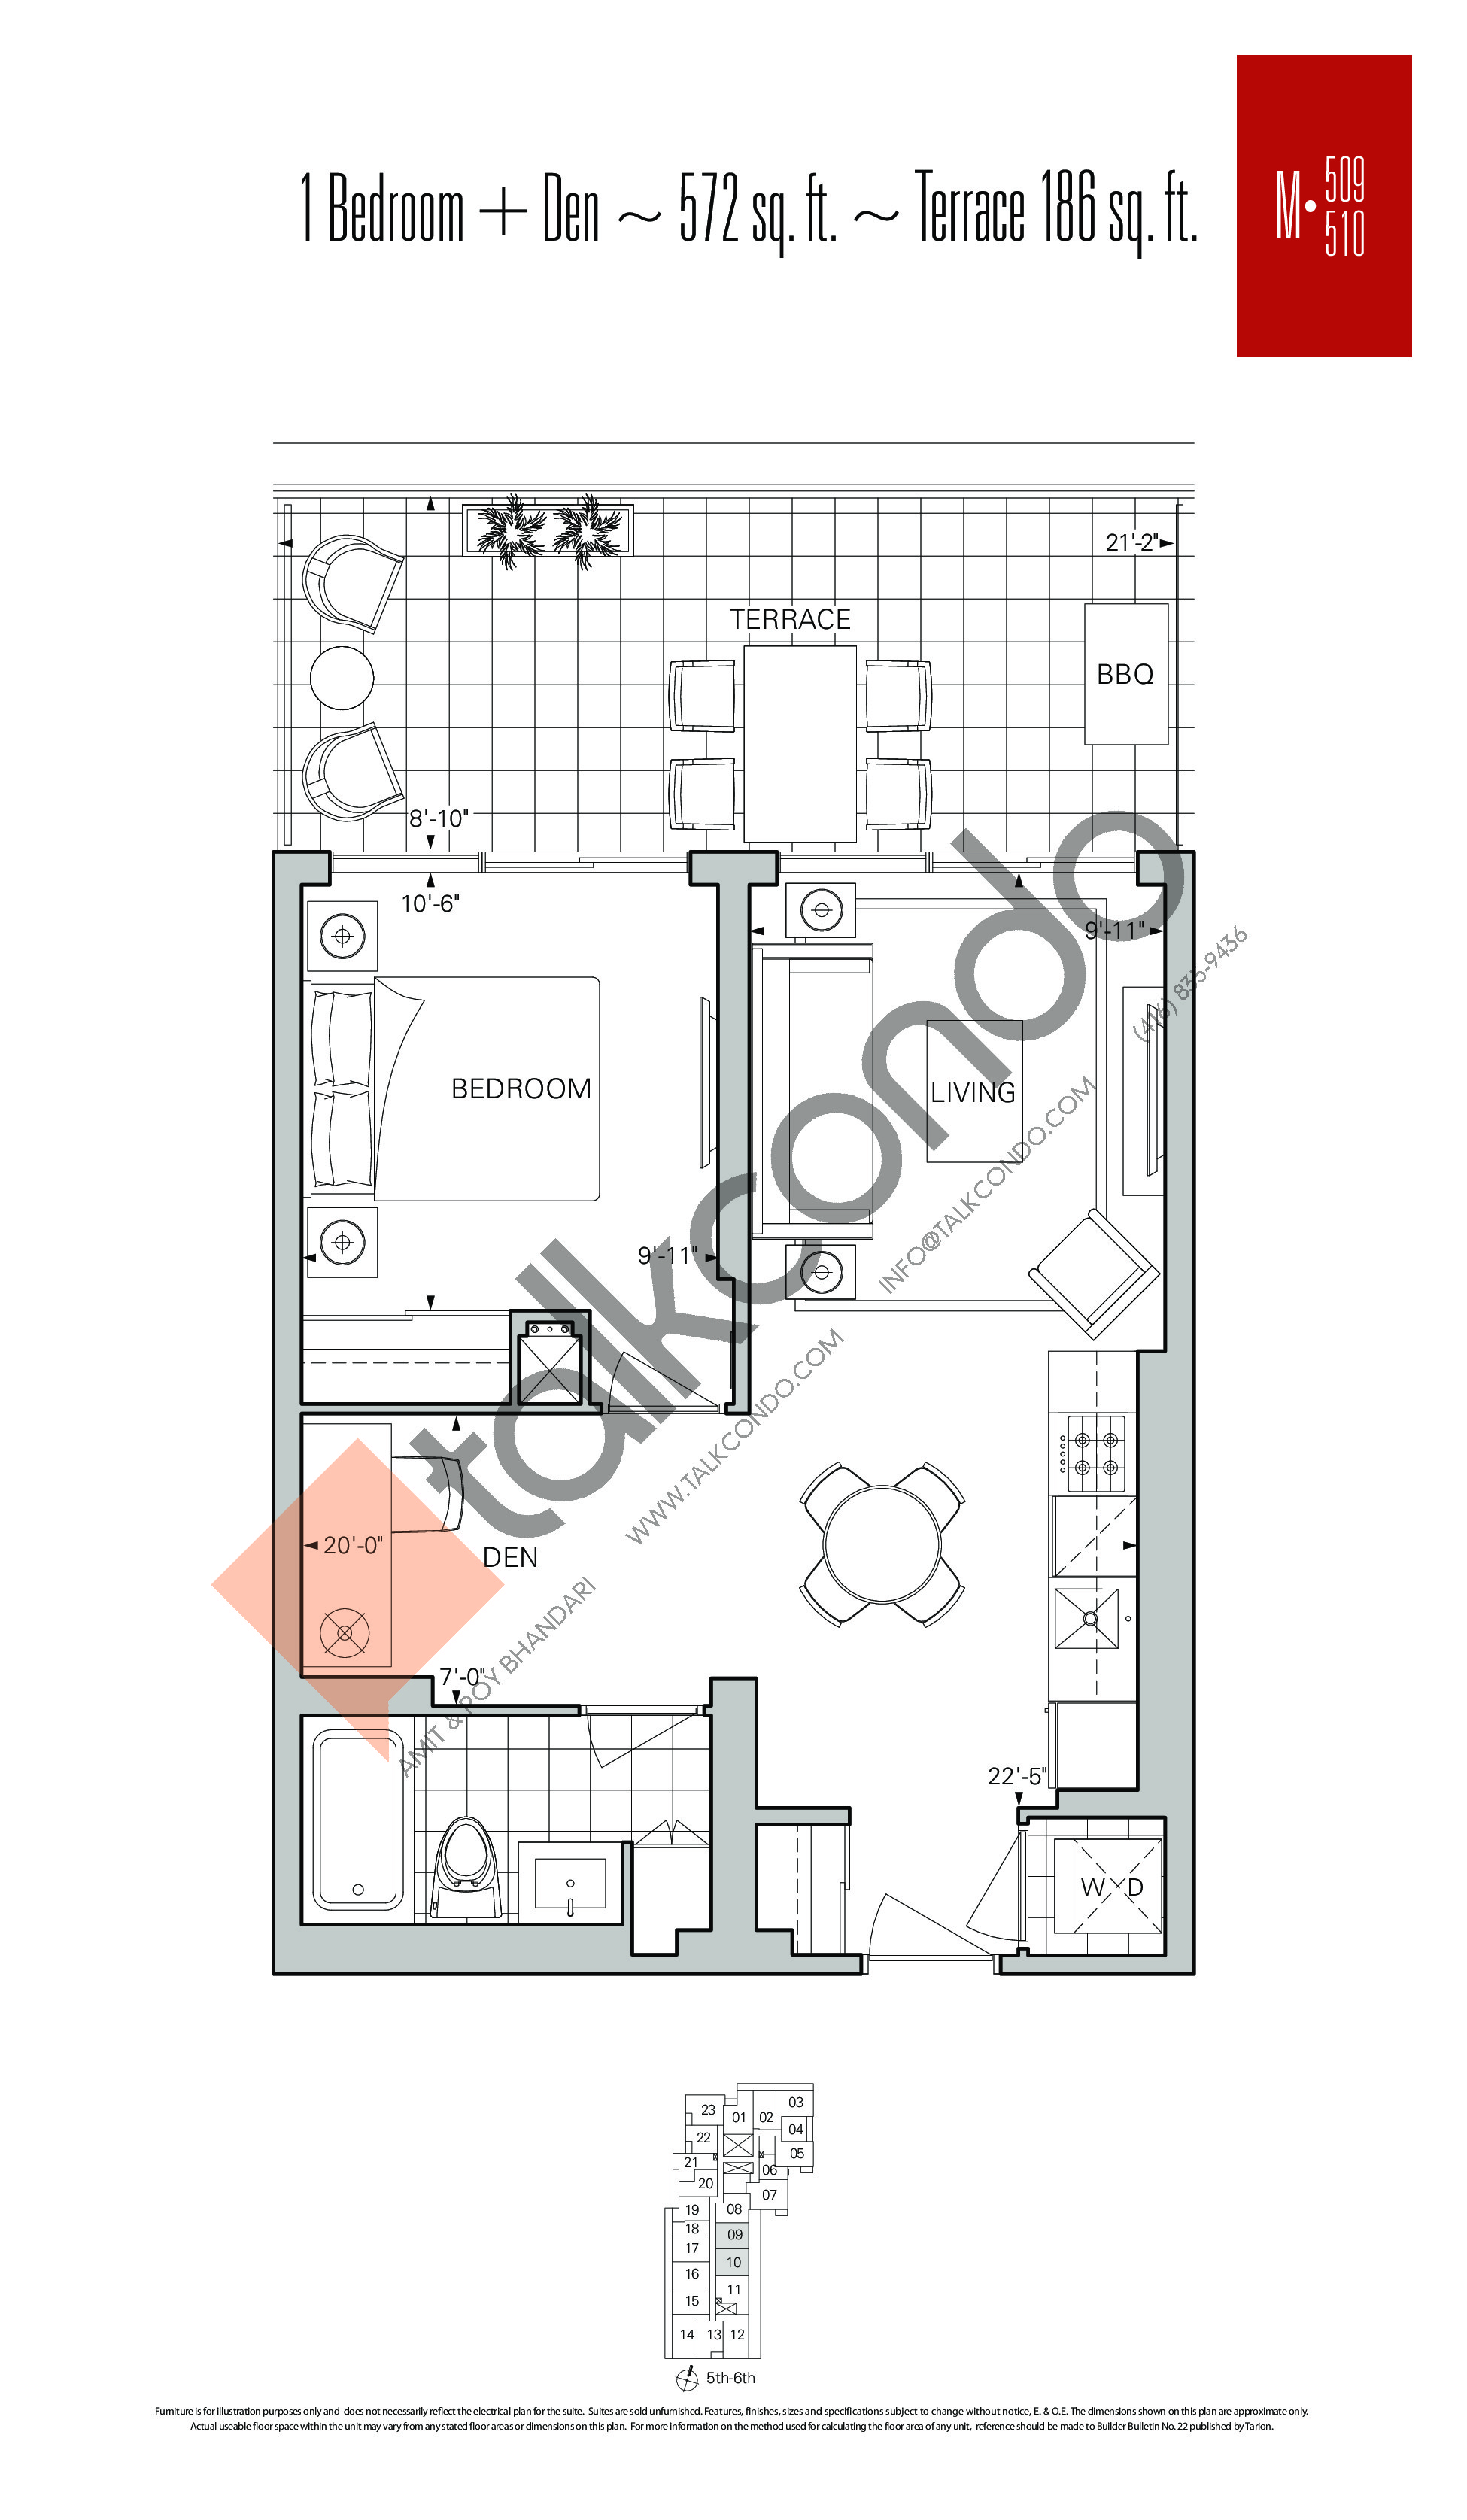 M-509 | M-510 Floor Plan at Rise Condos - 572 sq.ft